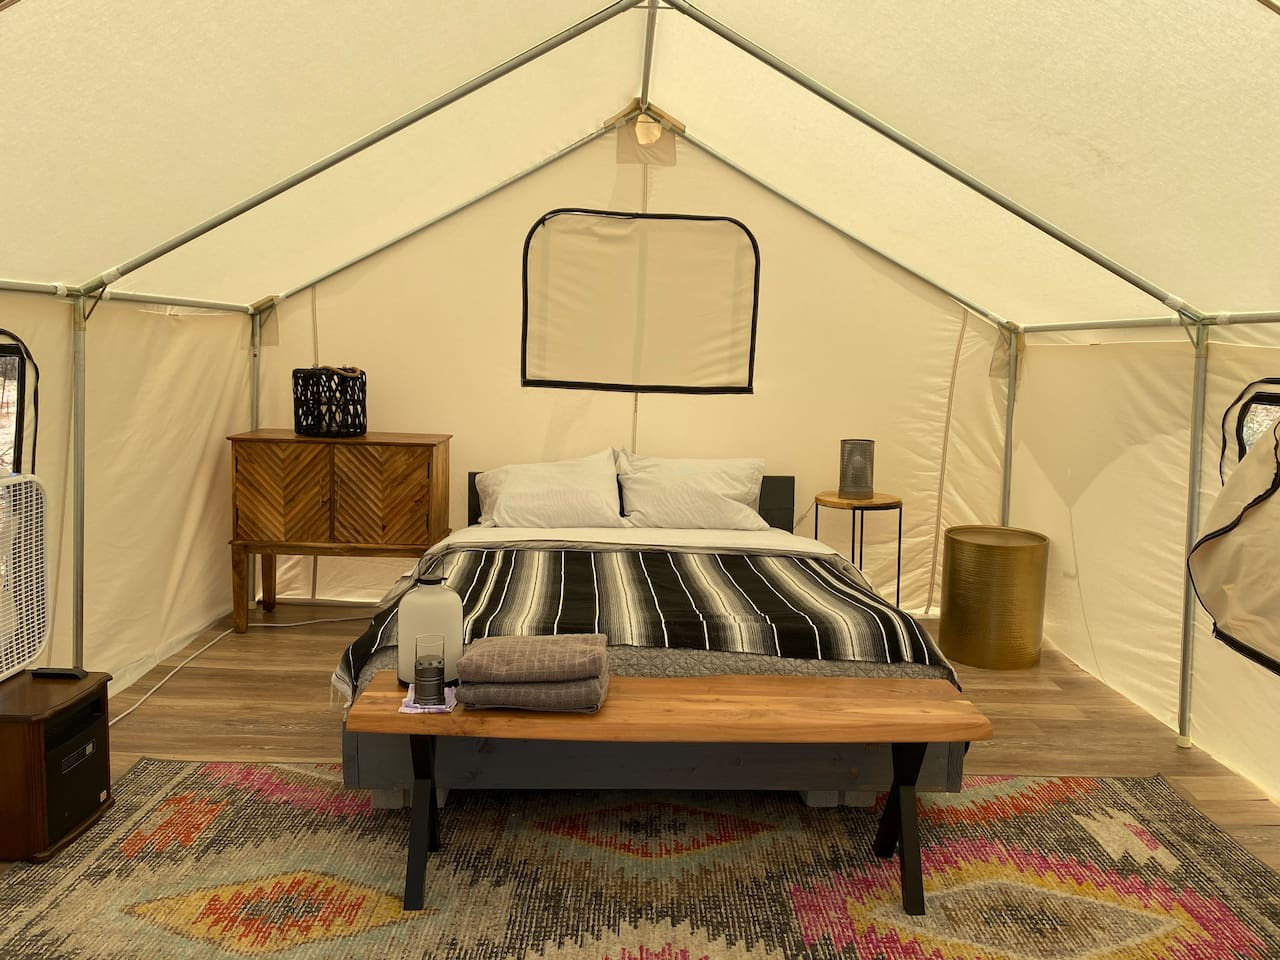 Yurt Glamping in Joshua Tree National Park